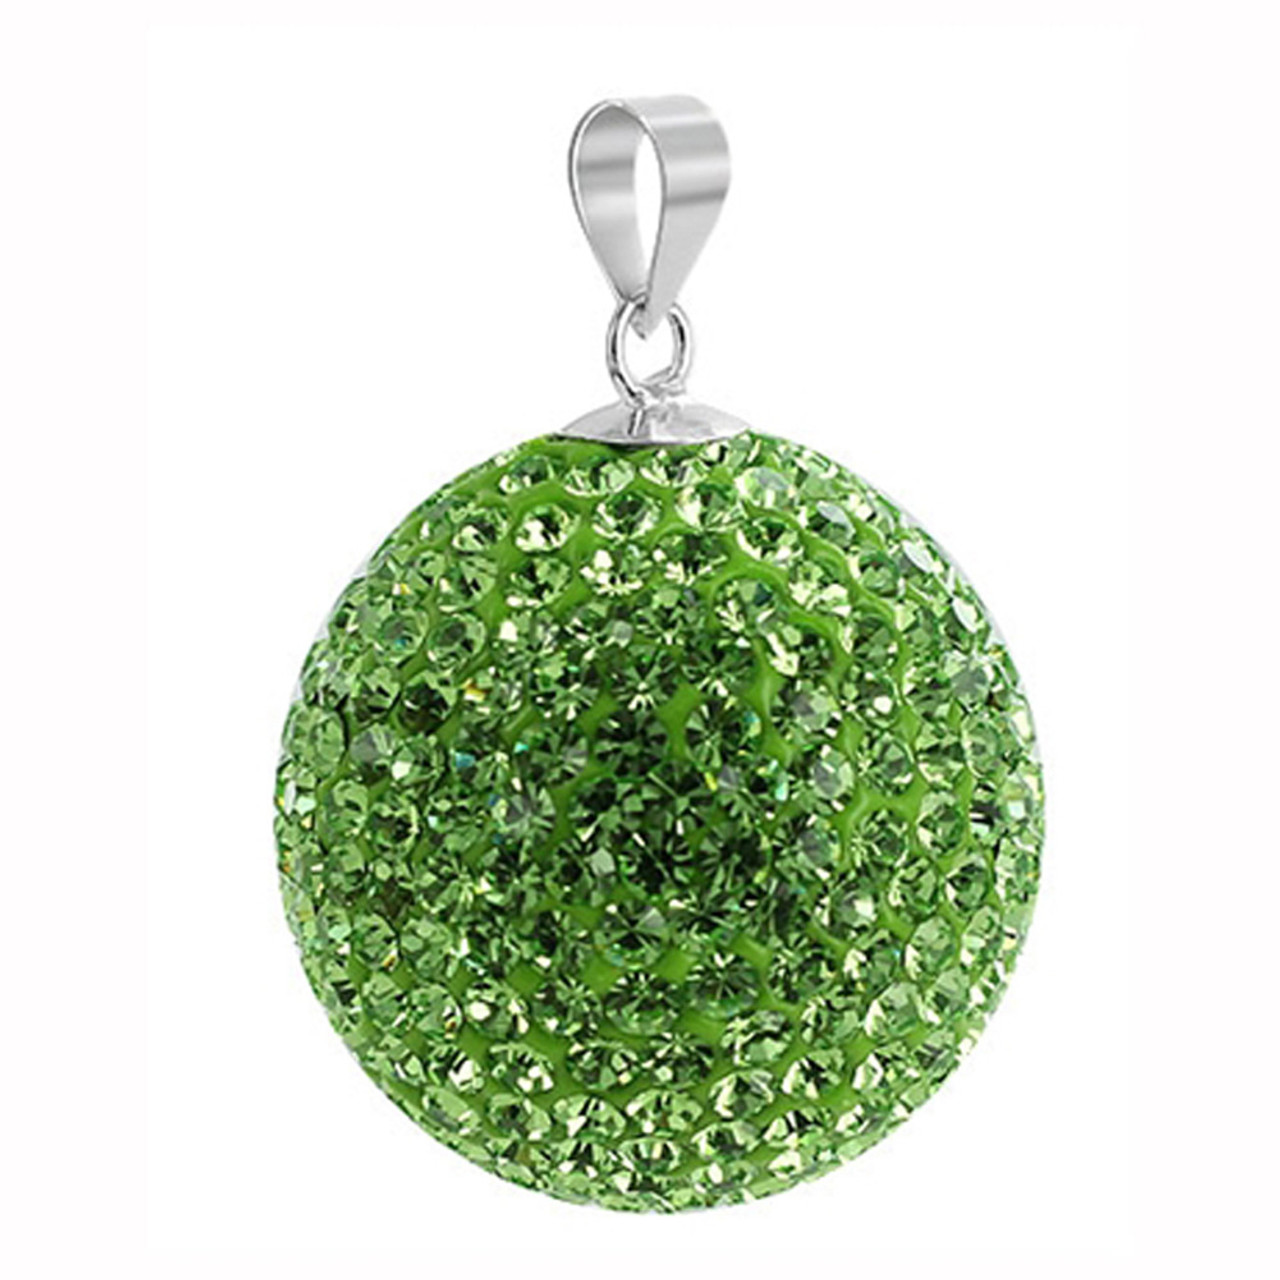 Round Green Disco Ball Sterling Silver Pendant